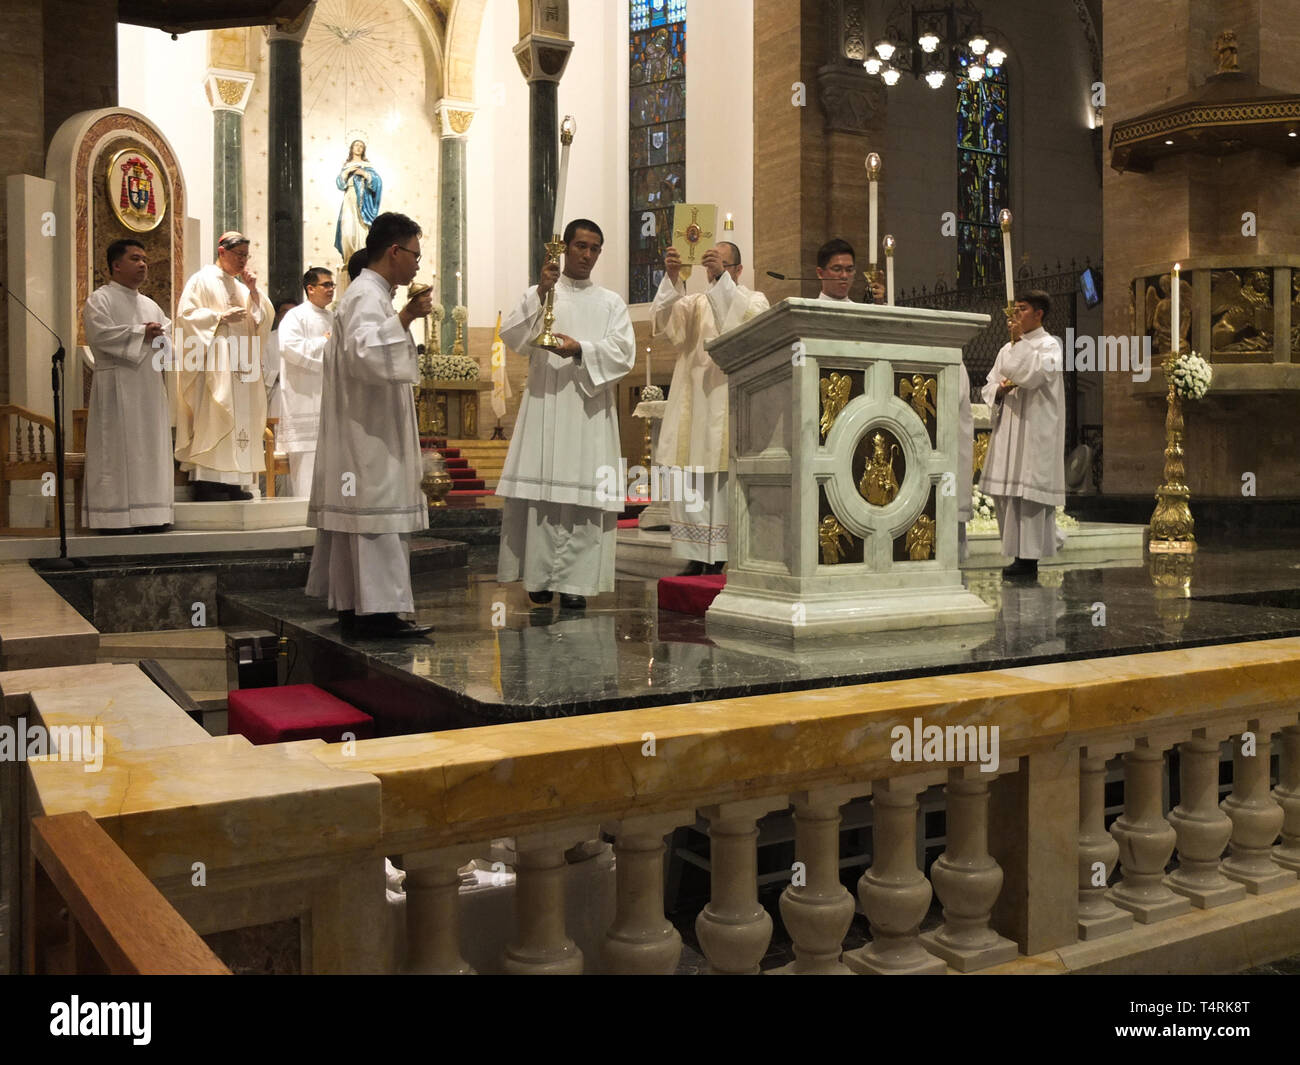 Manila Cathedral's Knights of the Altar seen preparing during the procession. Washing of the feet is a religious right observed by the Catholics, It is a form of Commandment of Jesus Christ that we should imitate his loving humility while the Manila Archbishop Luis Antonio Cardinal Tagle washes the feet of the twelve young people during the Maundy Thursday religious service at the Manila Cathedral in Manila. - Stock Image